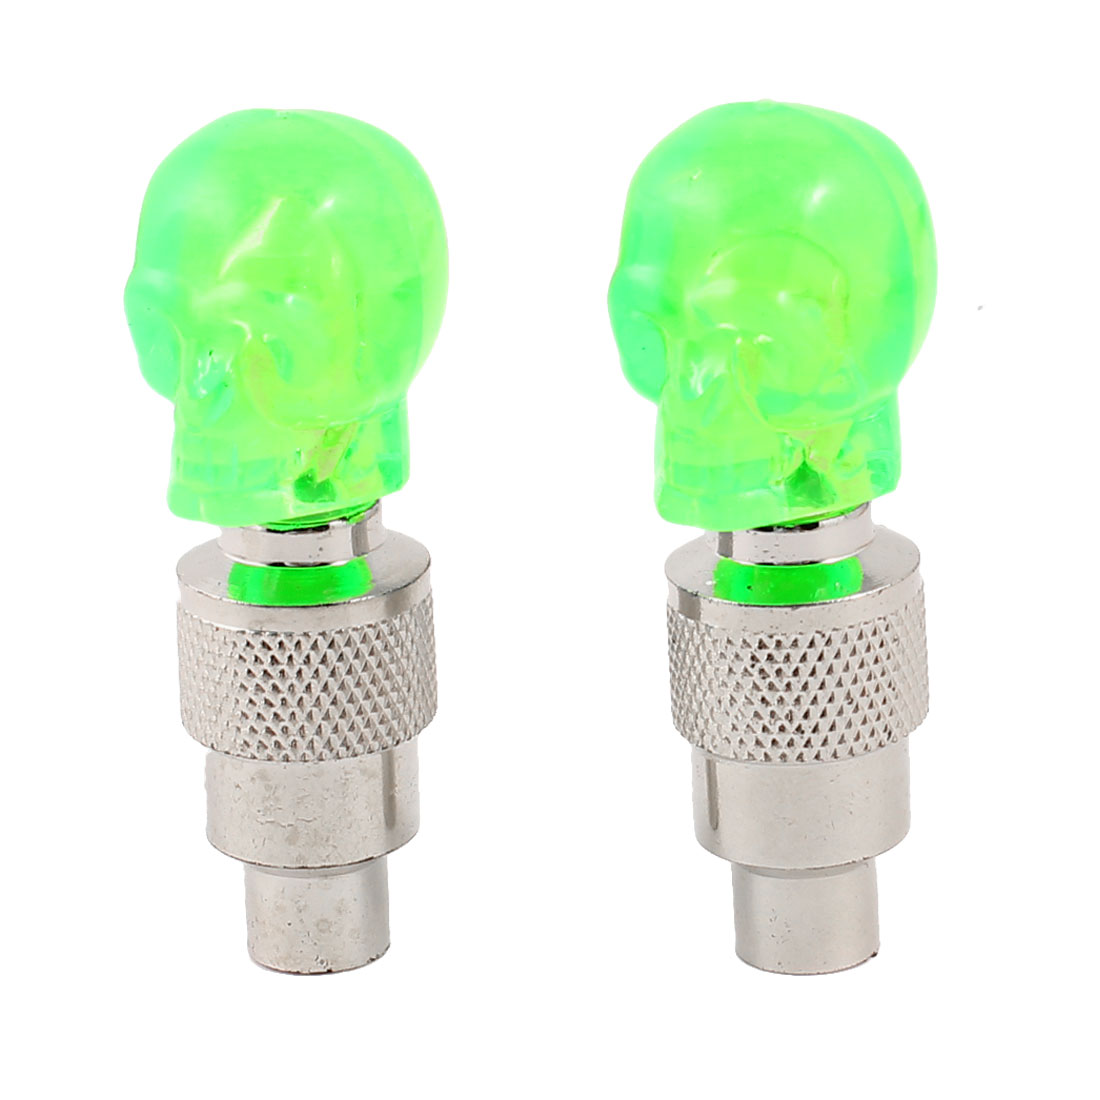 Skull Head Design Green Light Motorcycle Car Tire Valve Cap Cover 2 Pcs